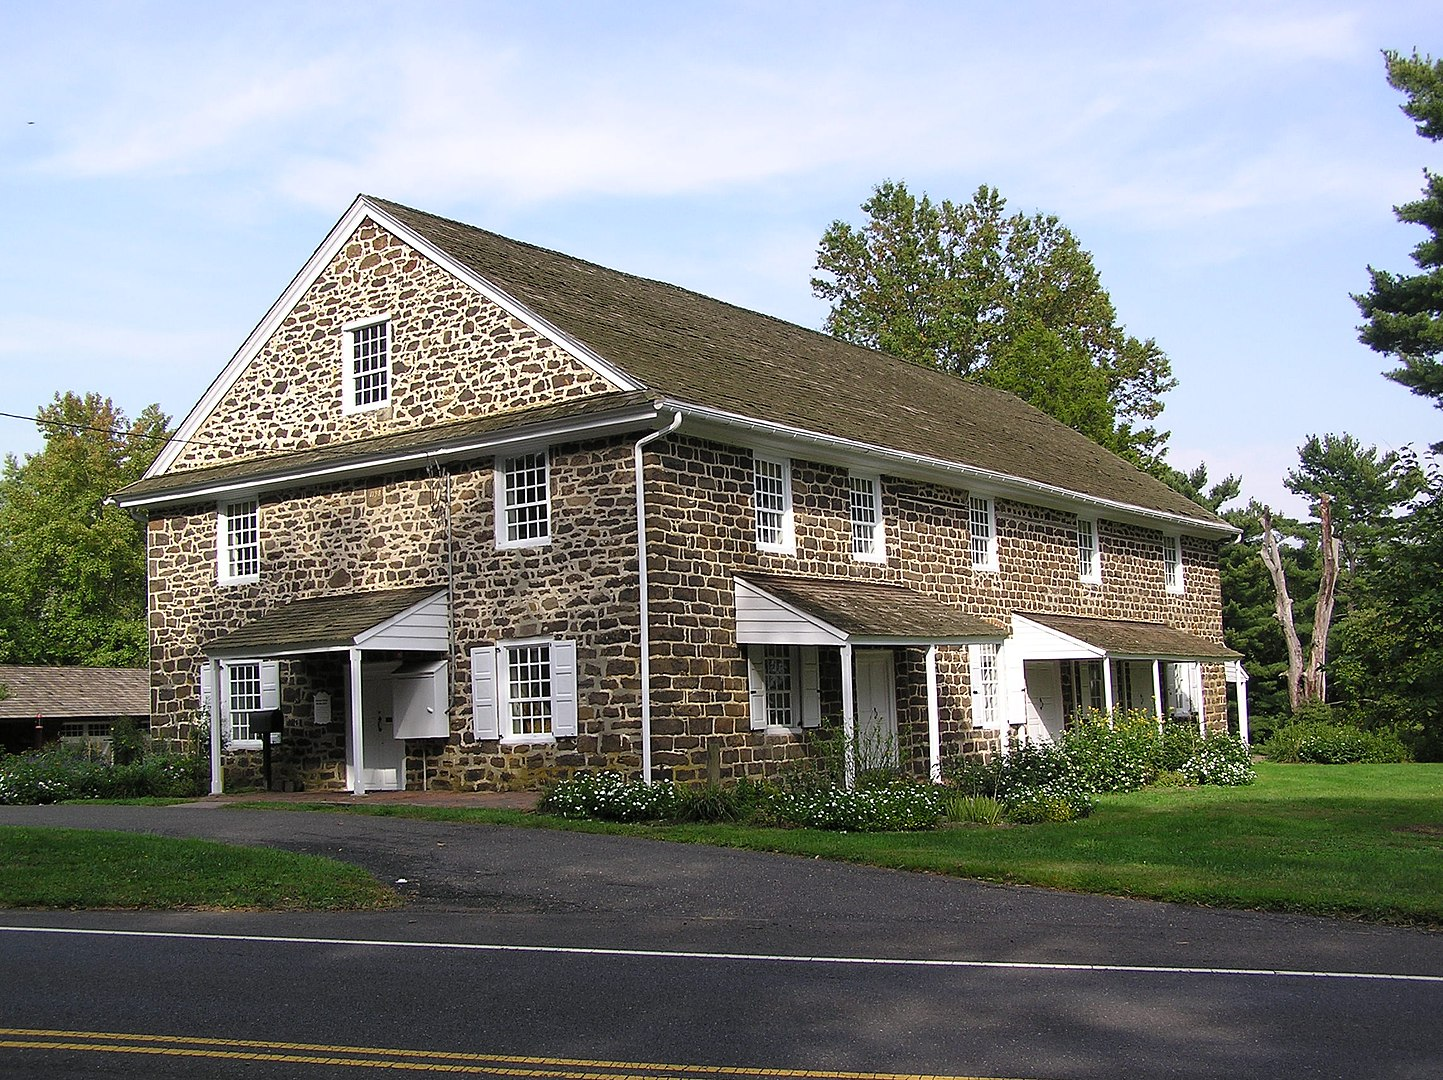 Evesham Friends Meeting House located in what is now Mount Laurel